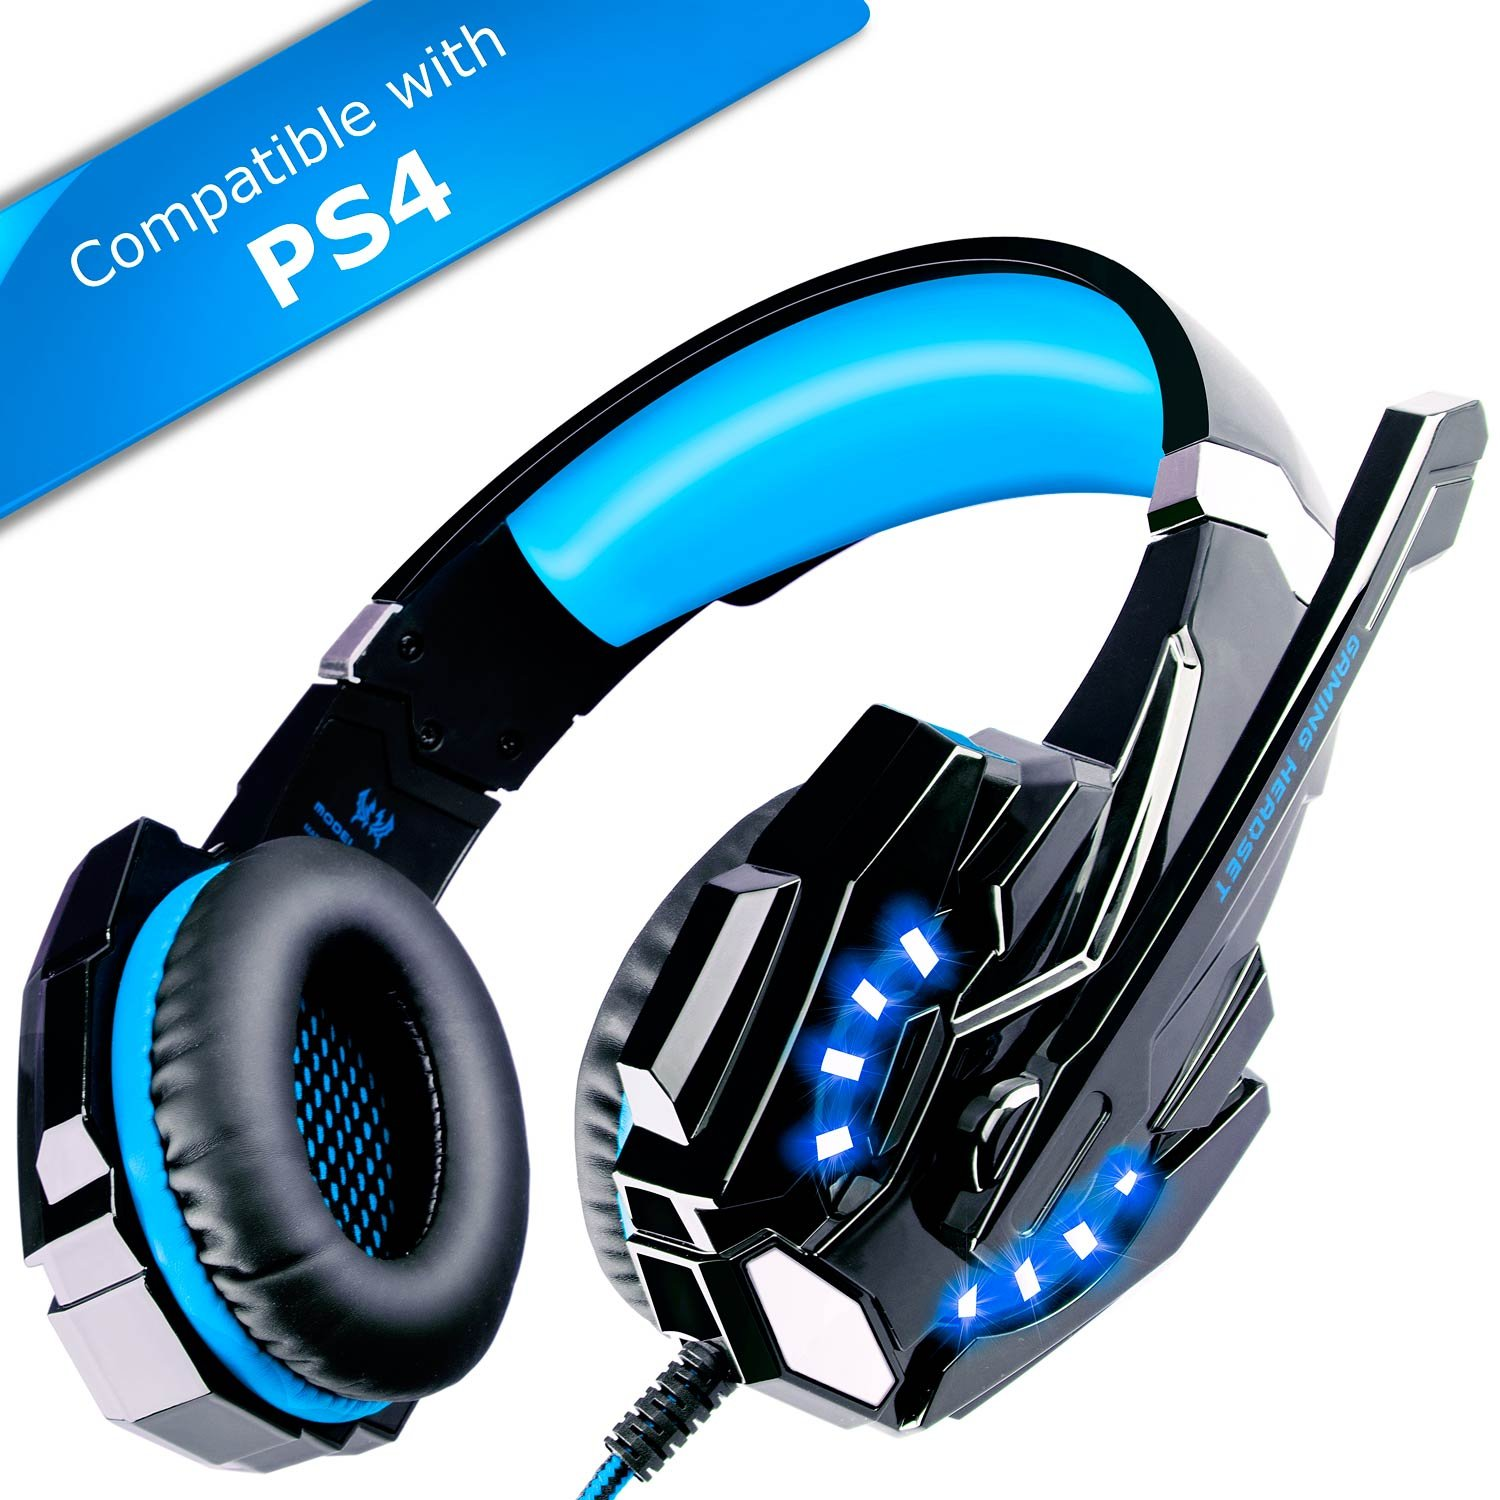 ecoopro gaming headset ps4 headset gaming headphones with. Black Bedroom Furniture Sets. Home Design Ideas